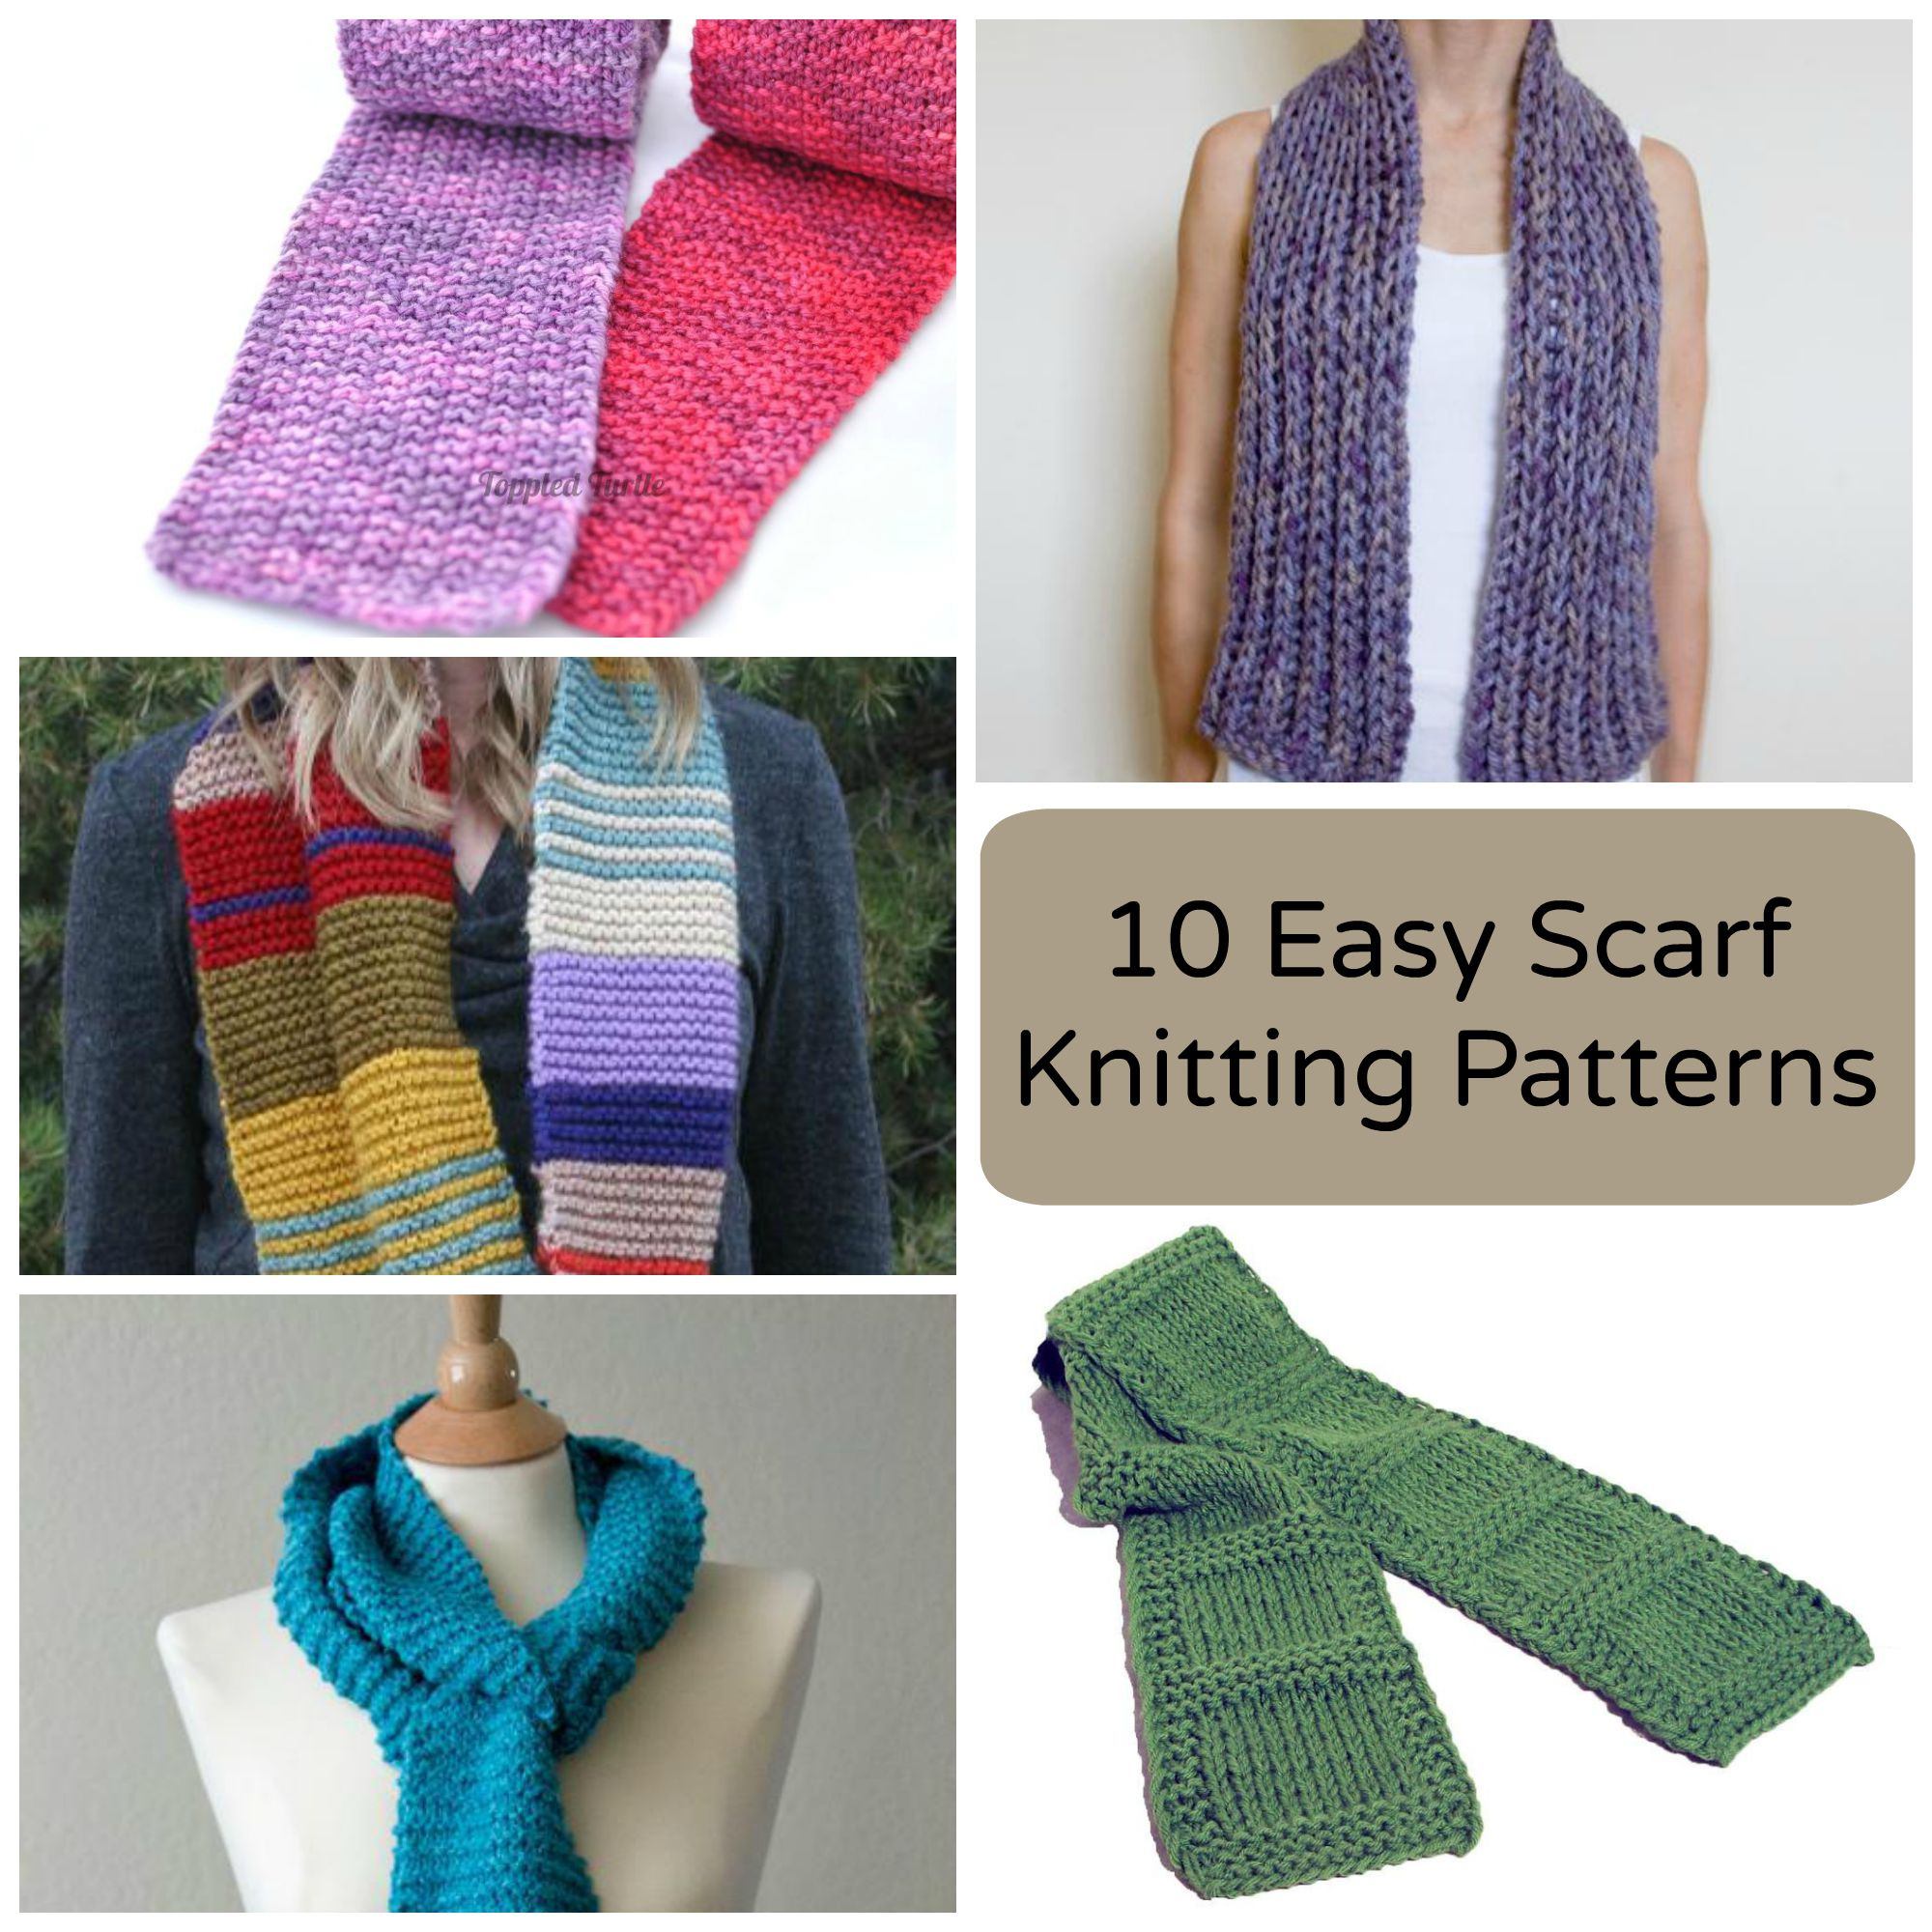 Simple Scarf Knitting Patterns For Beginners Beautiful Scarf Knitting Patterns Crochet And Knitting Patterns 2019